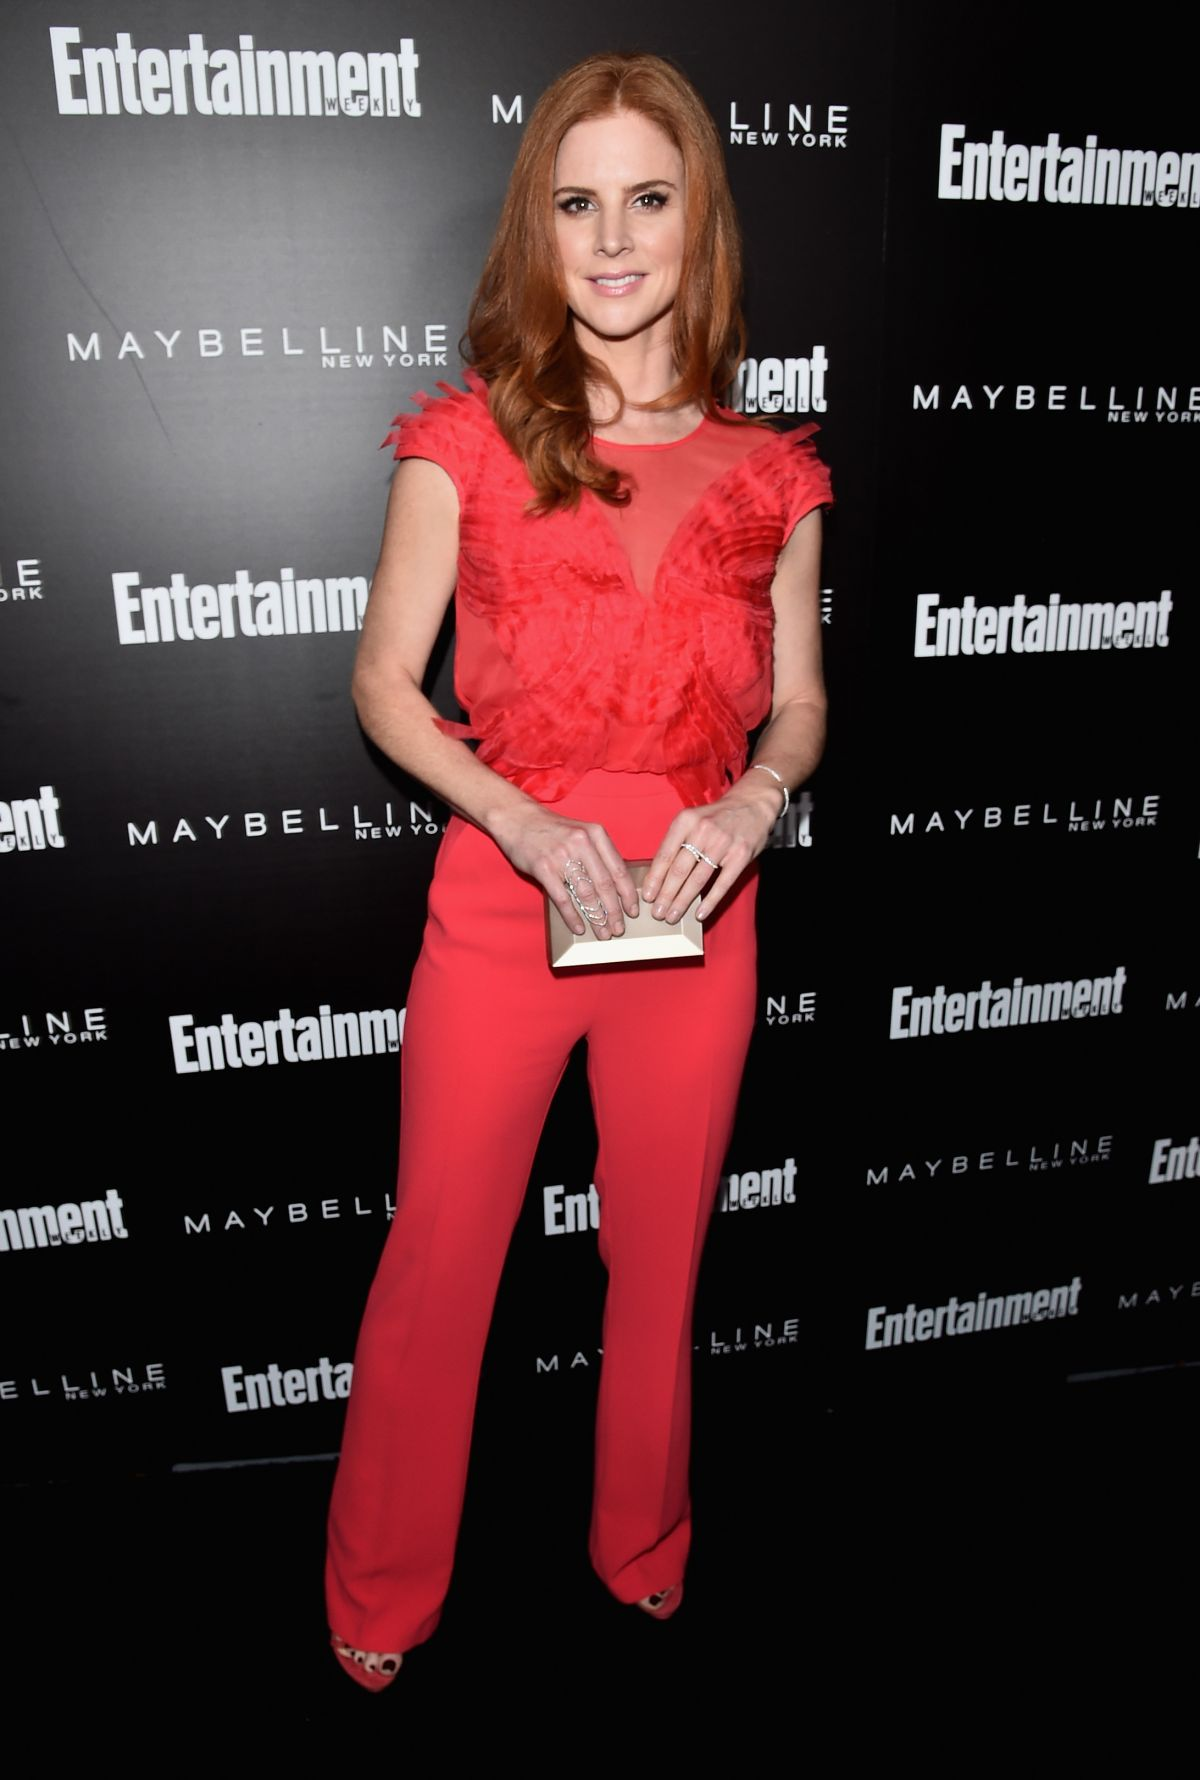 SARAH RAFFERTY at EW Celebration Honoring the Screen Actors Guild Awards Nominees in Los Angeles 01/29/2016